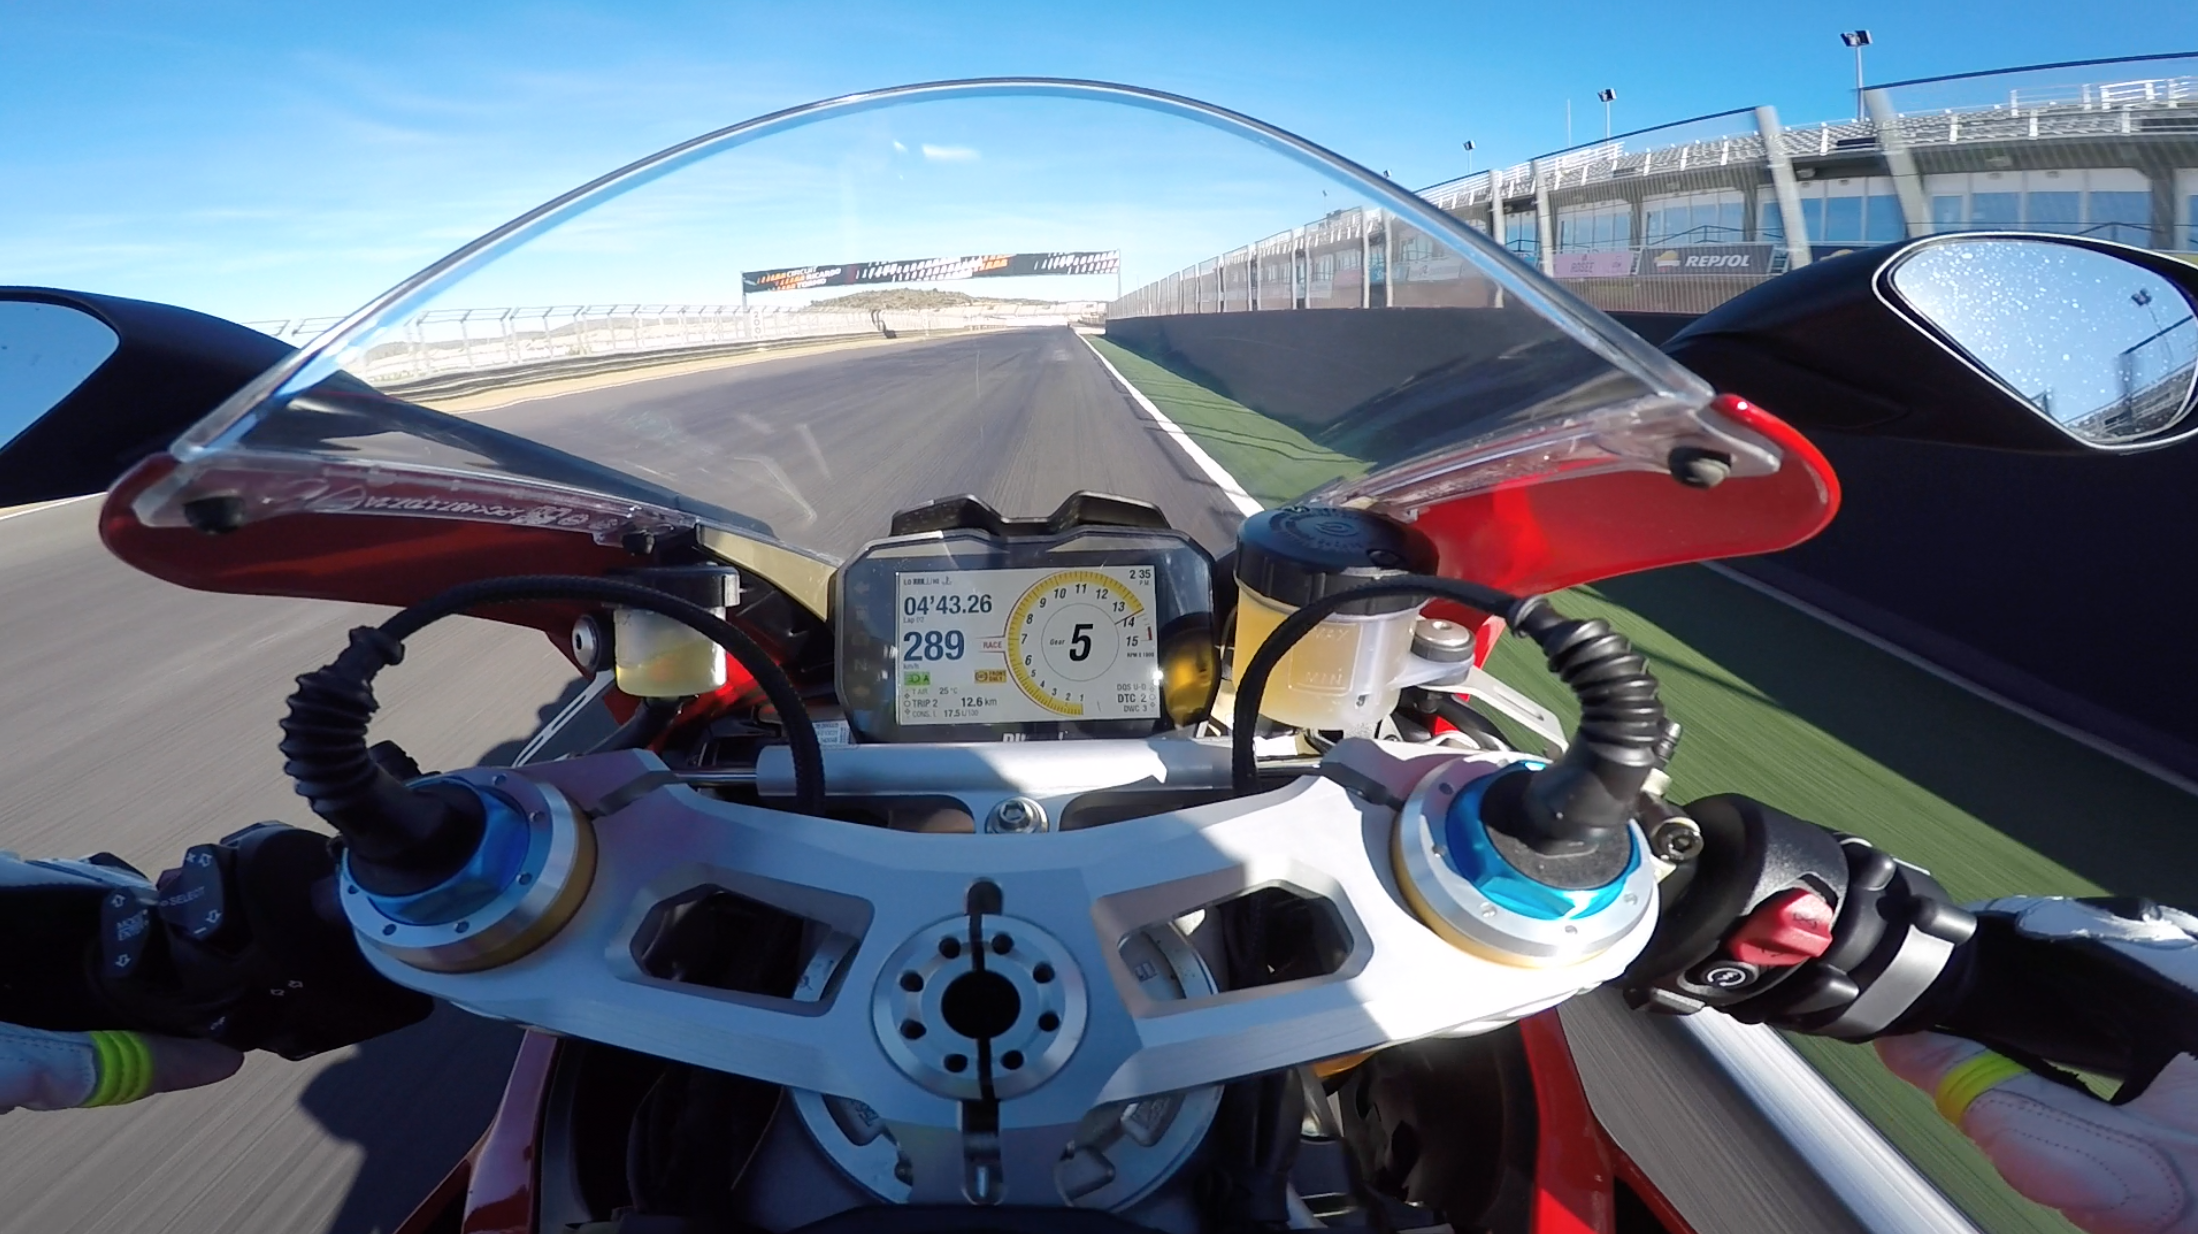 The 2018 Panigale V4 S Is The Fastest Ducati Superbike We've